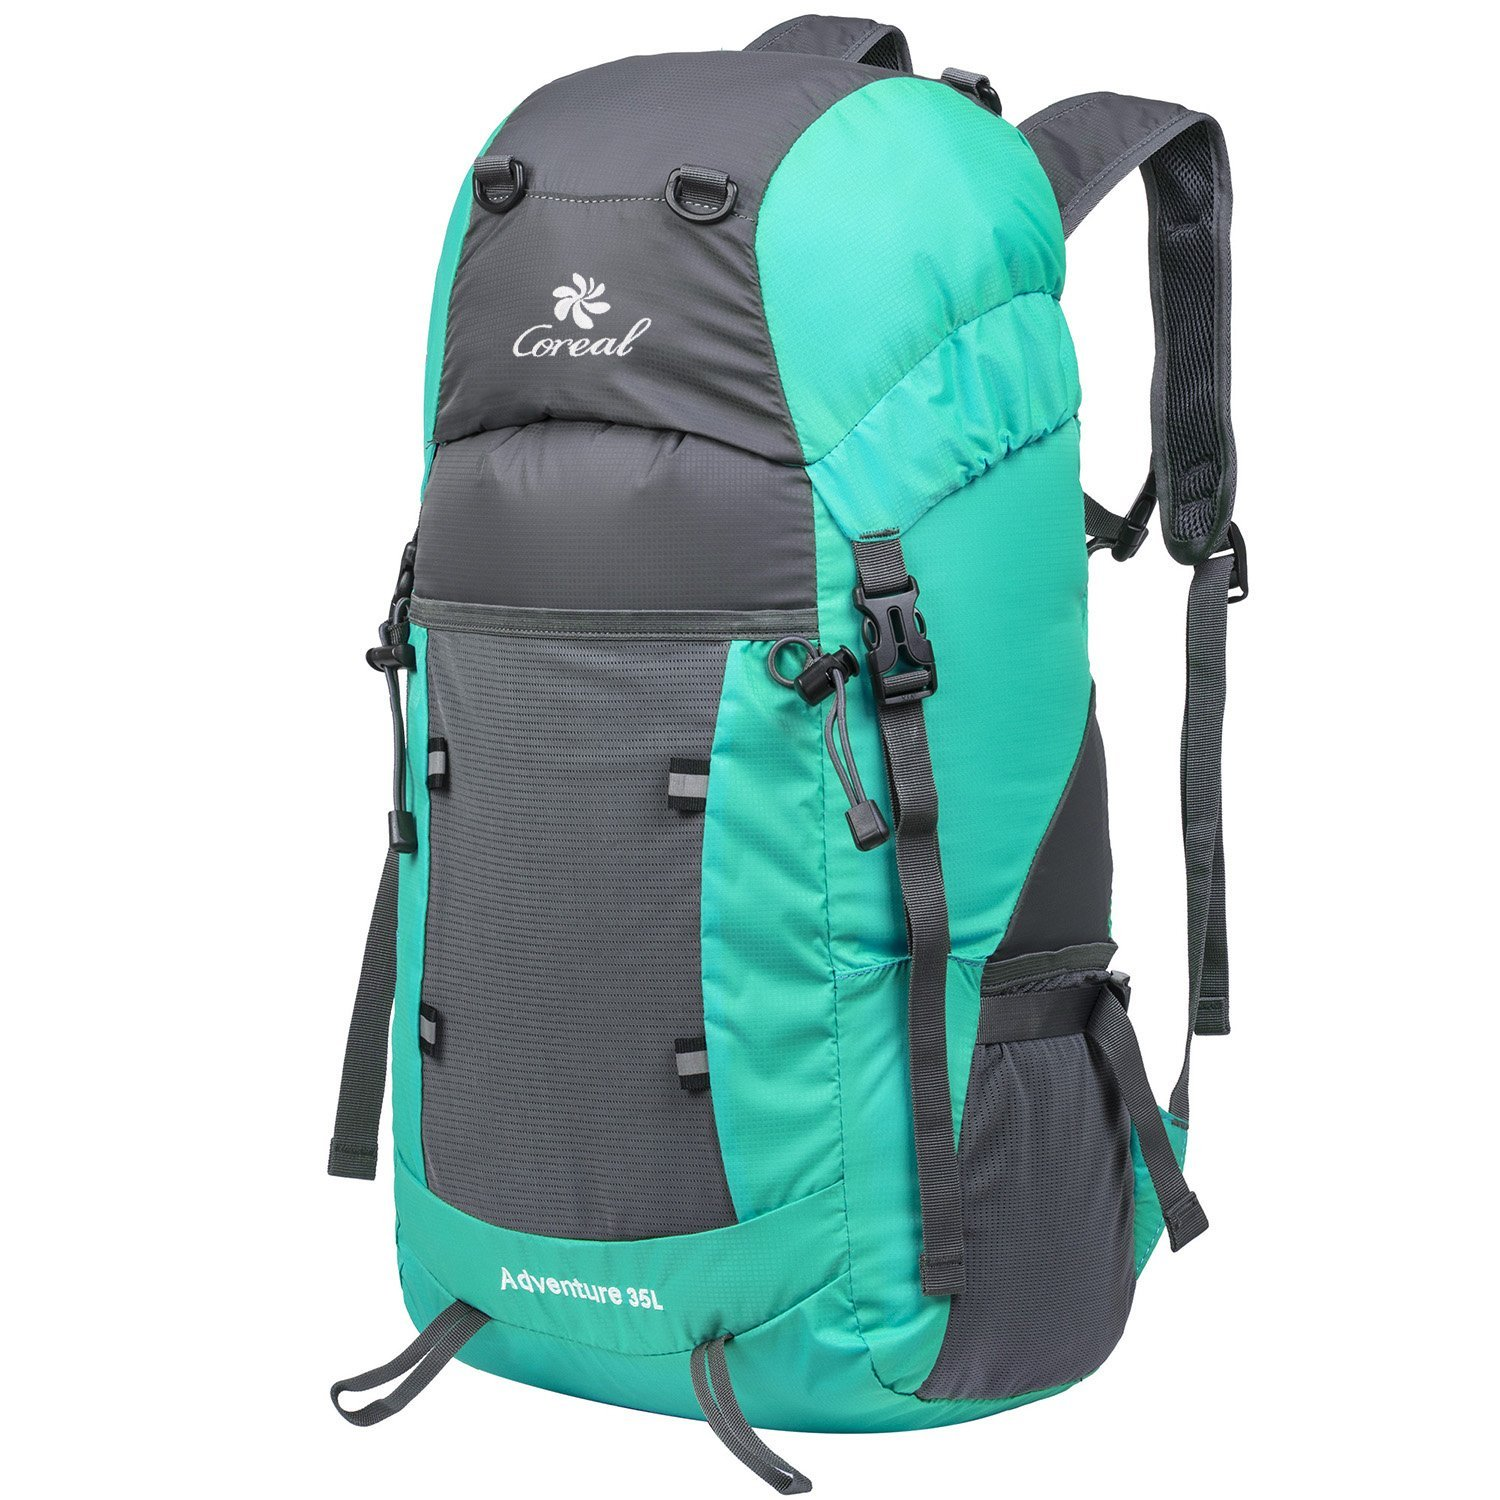 f01afbf4e1 Whats The Best Backpack For Hiking- Fenix Toulouse Handball